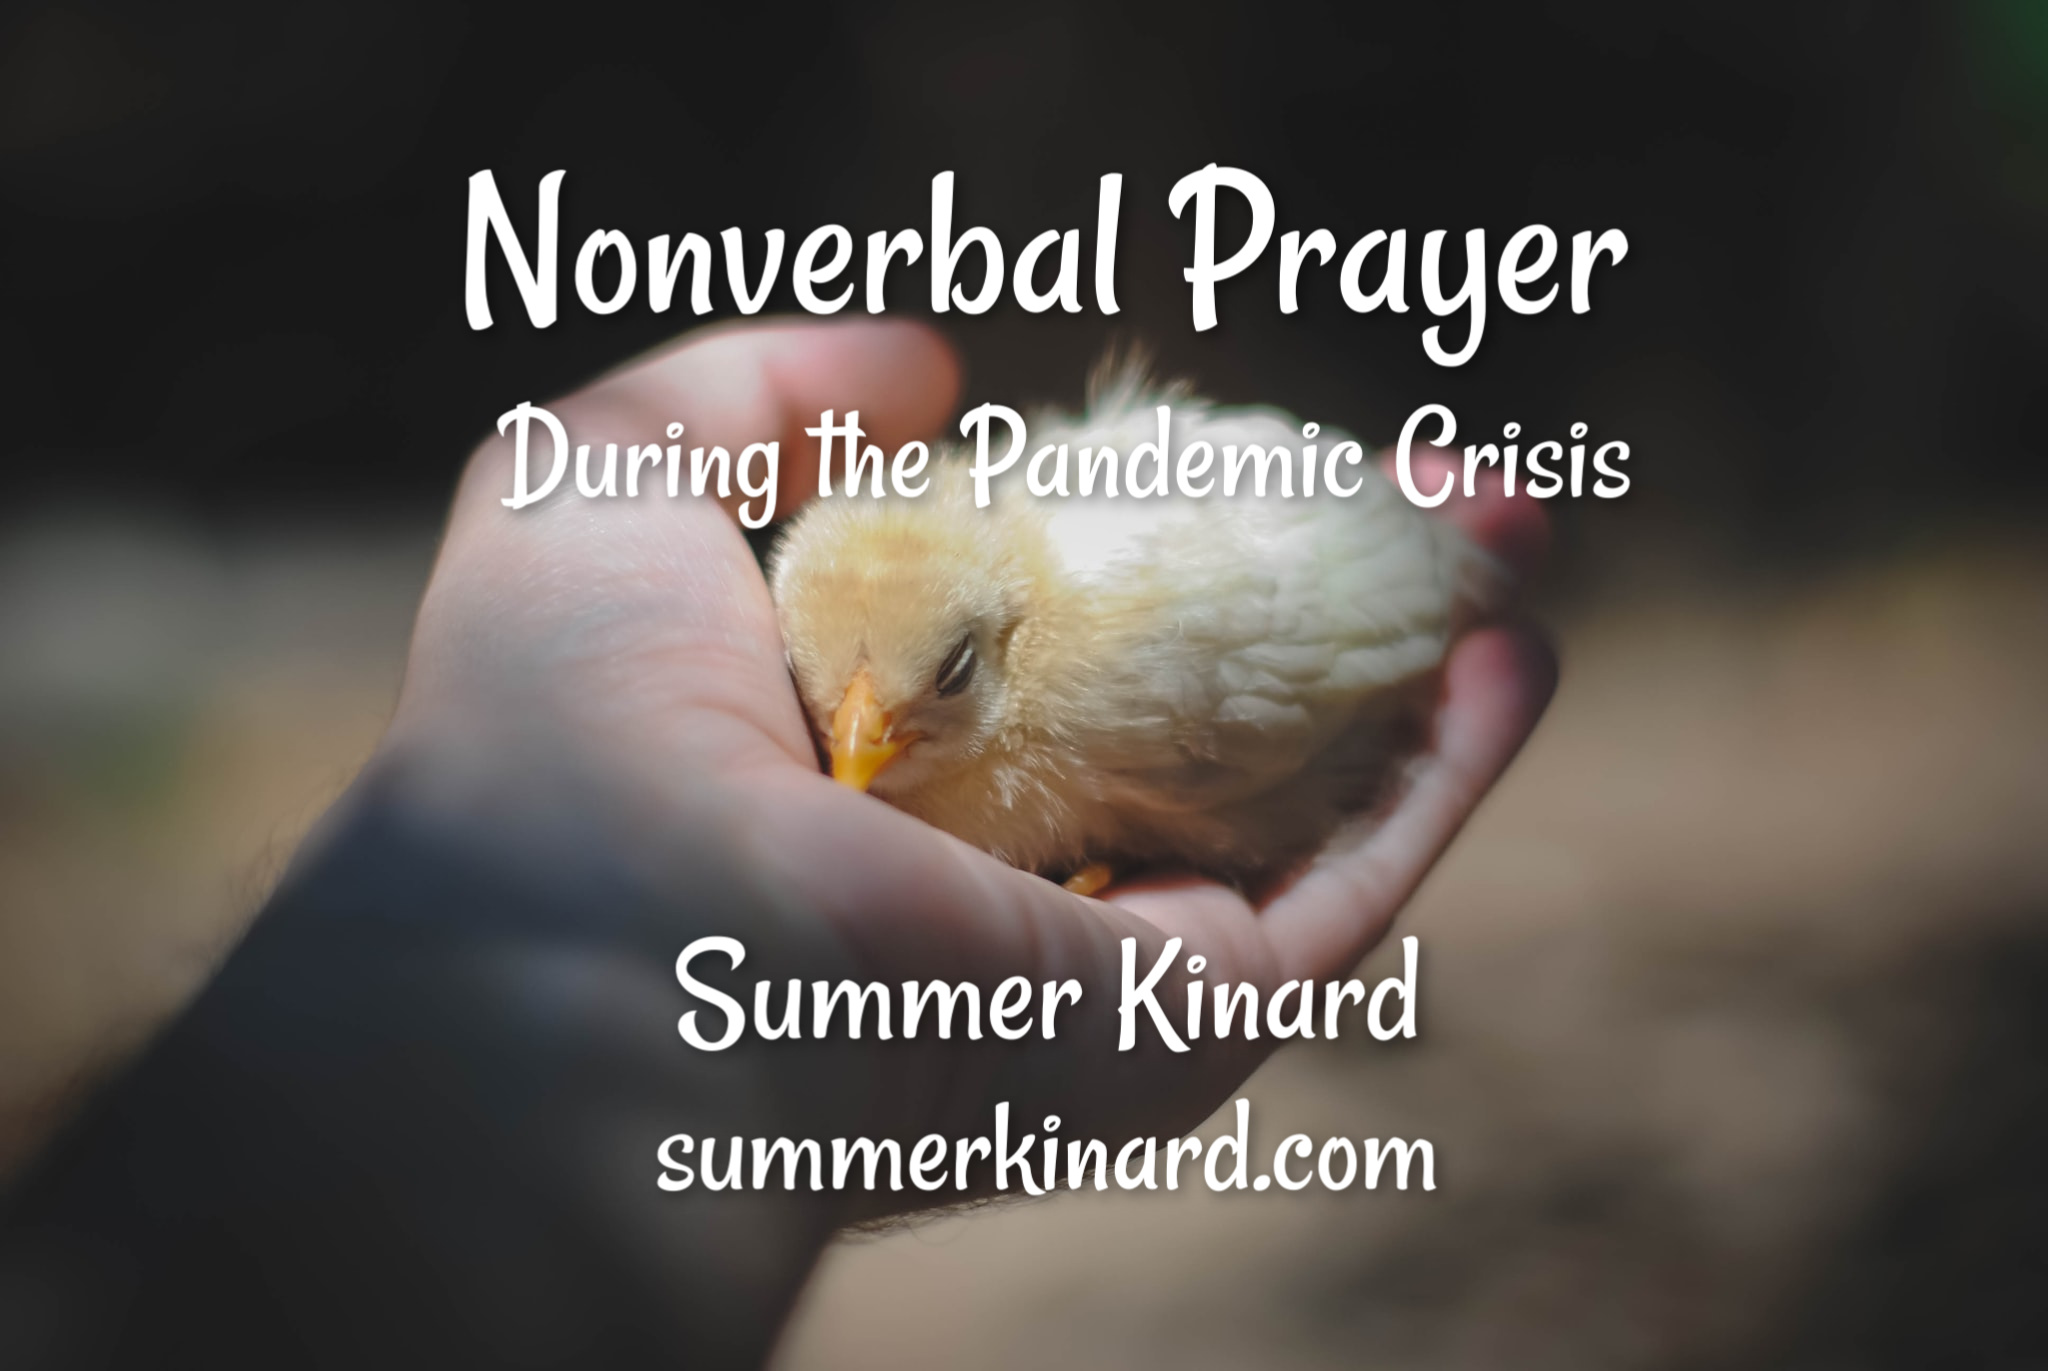 Nonverbal Prayer During the Pandemic Crisis